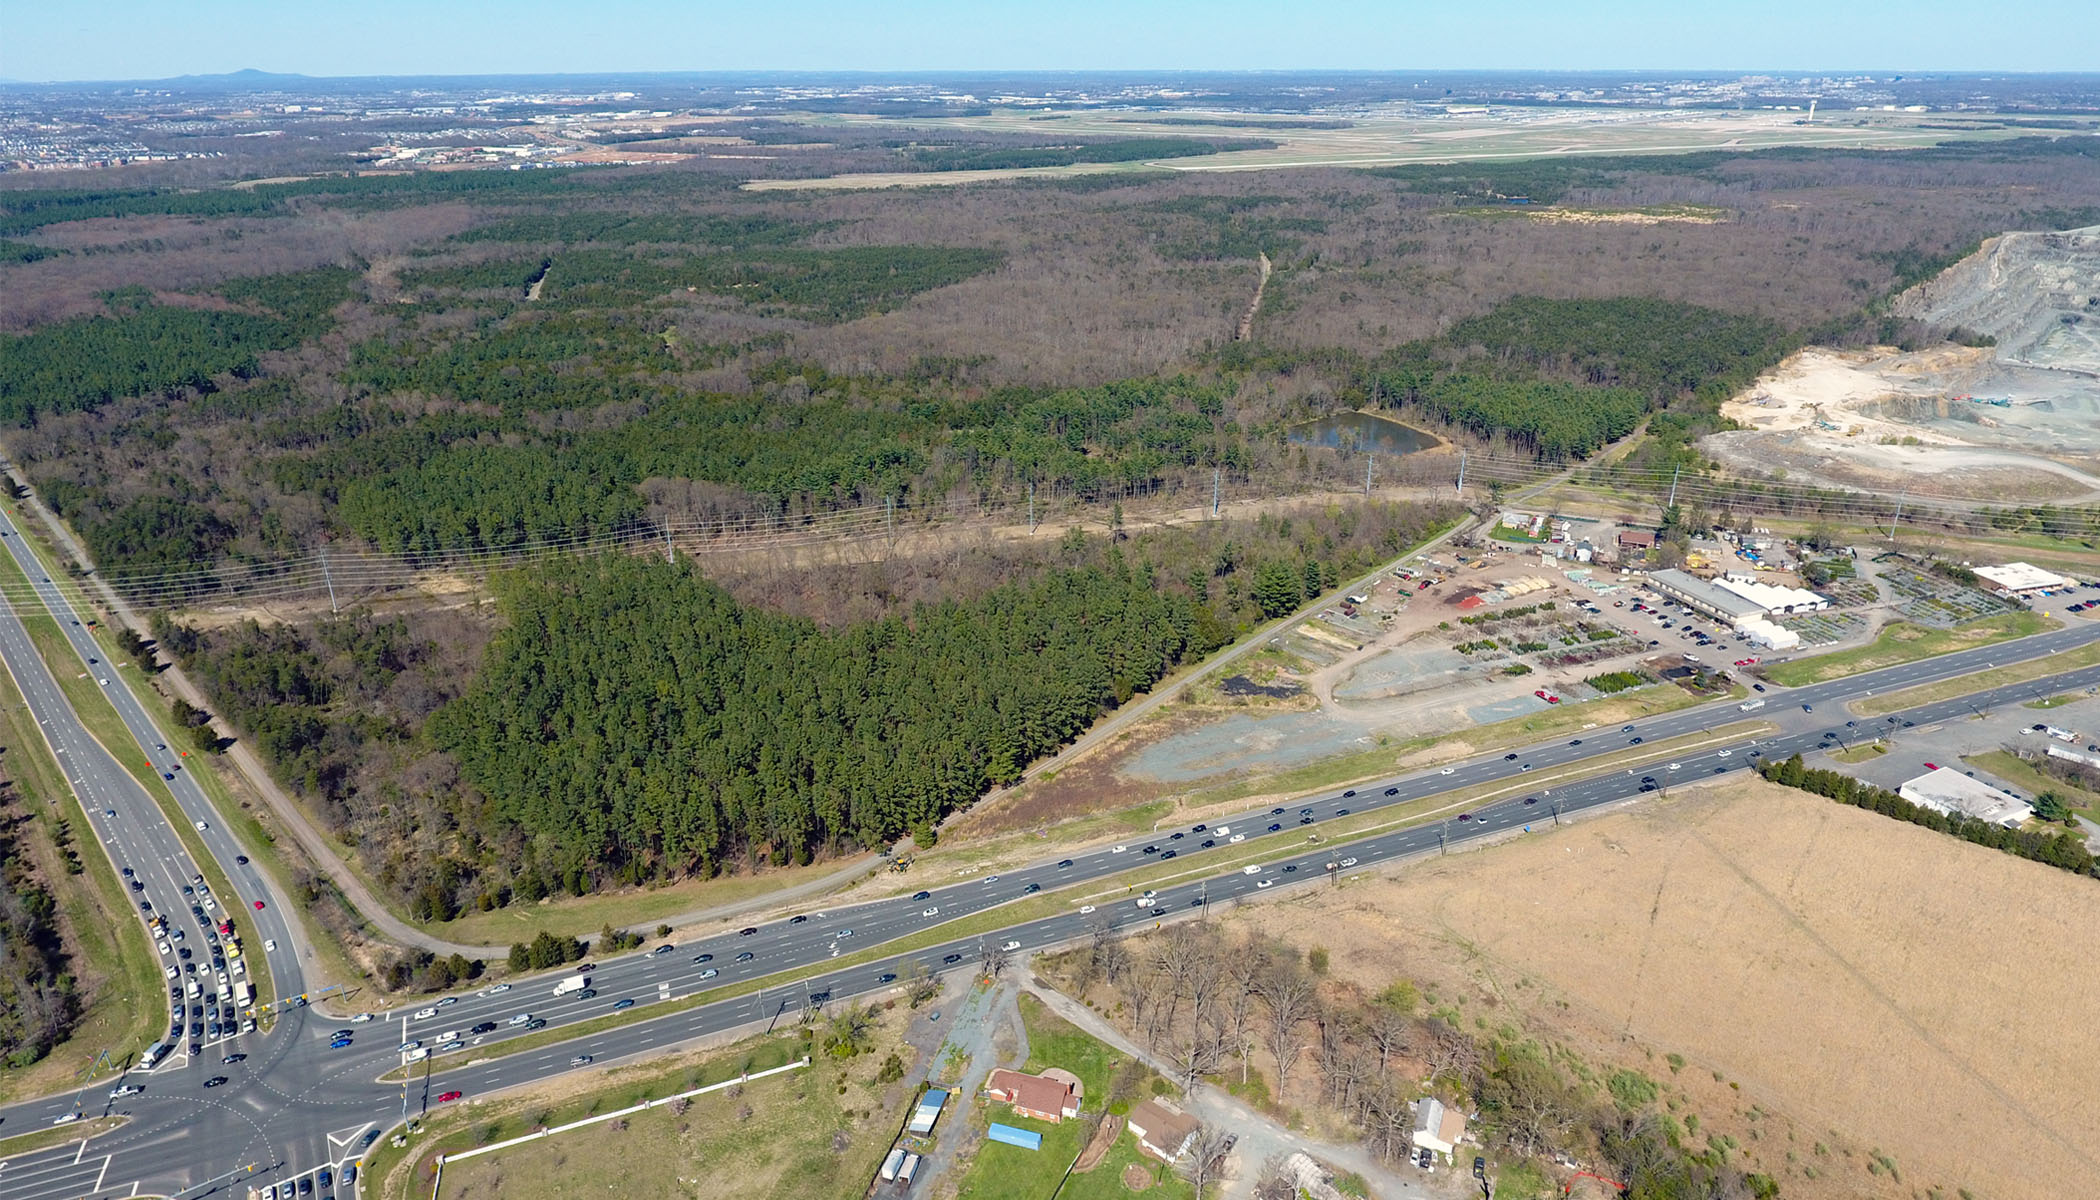 April 2018 aerial view toward the site, the intersection of US Route 50 (John Mosby Highway) and Loudoun County Parkway (VA-606) with Dulles Airport beyond